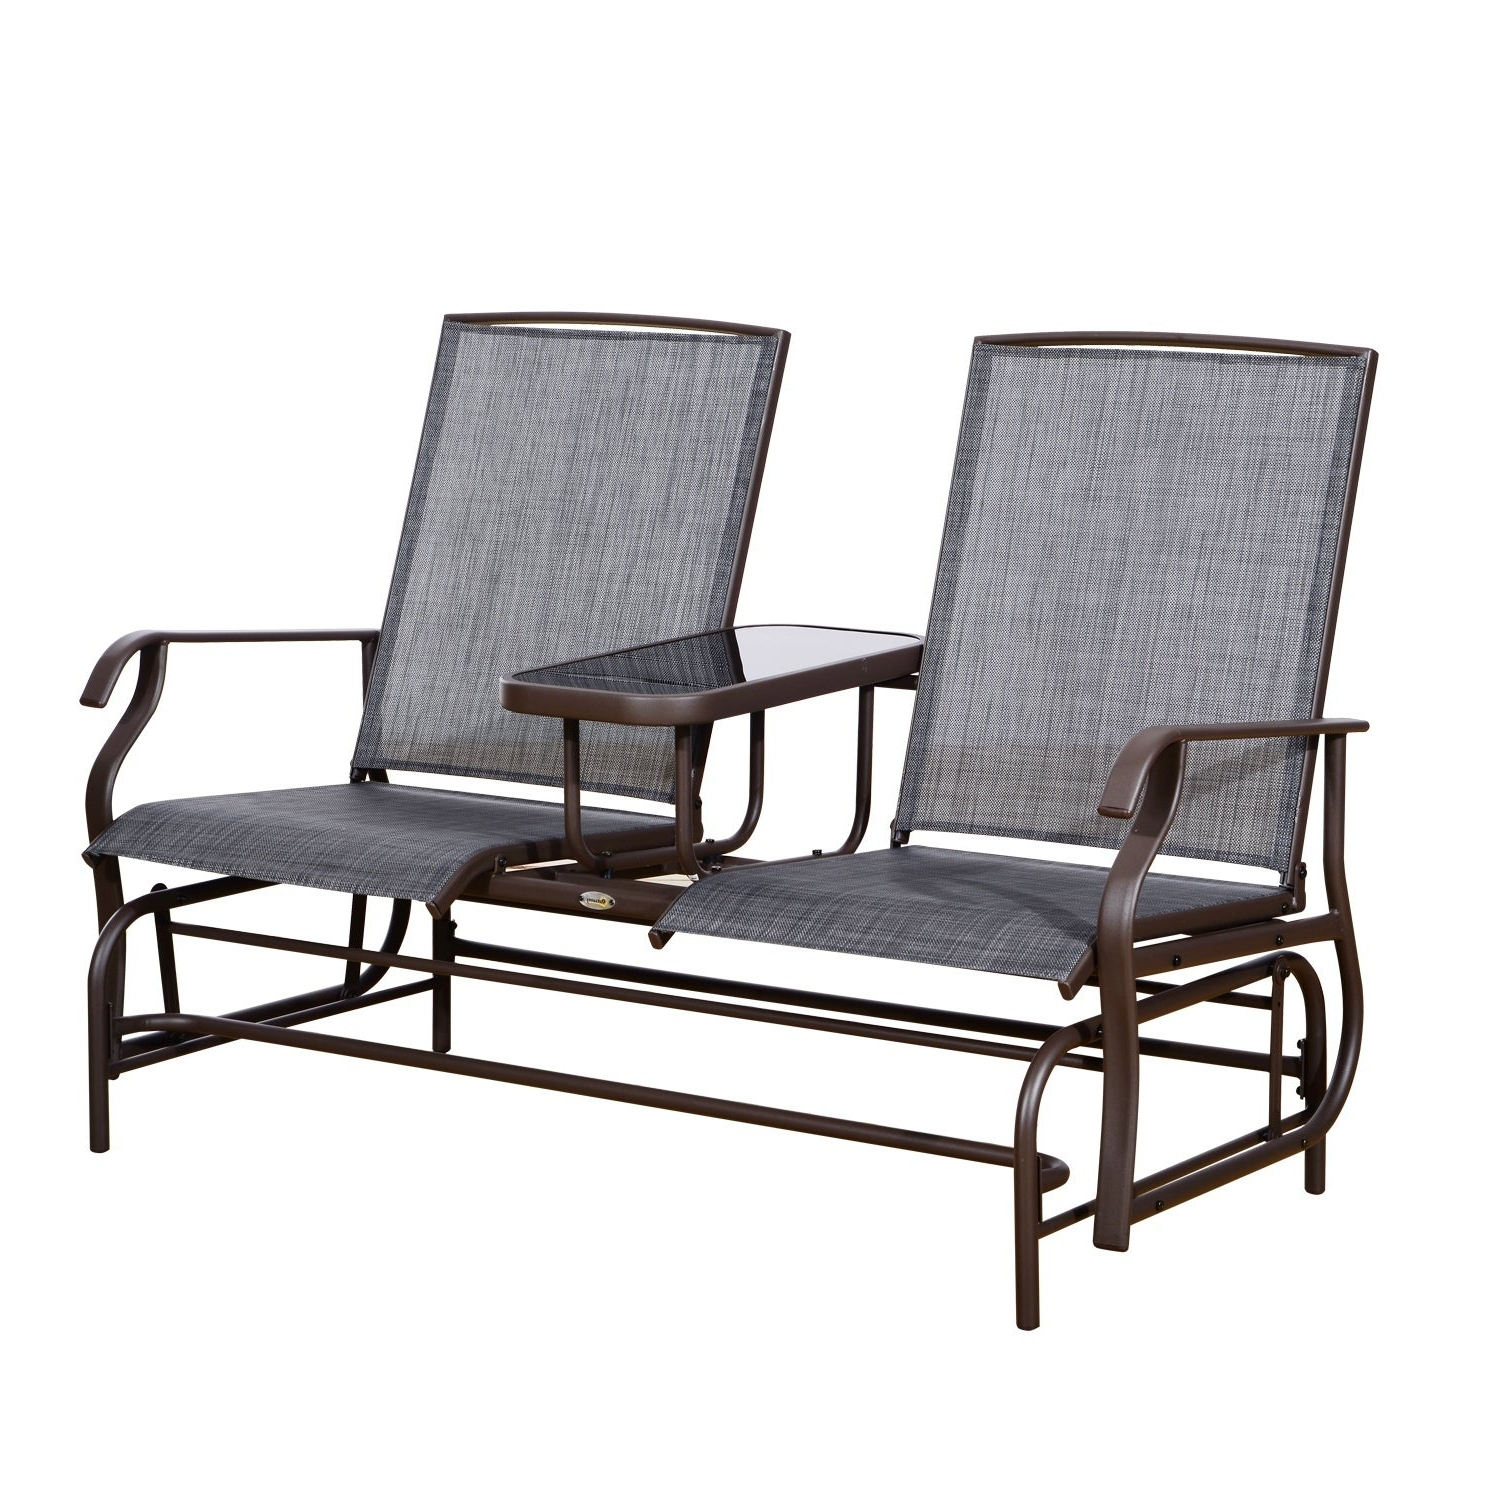 Fashionable Twin Seat Glider Benches Within Outsunny Two Person Outdoor Mesh Fabric Patio Double Glider Chair With  Center Table (View 10 of 31)